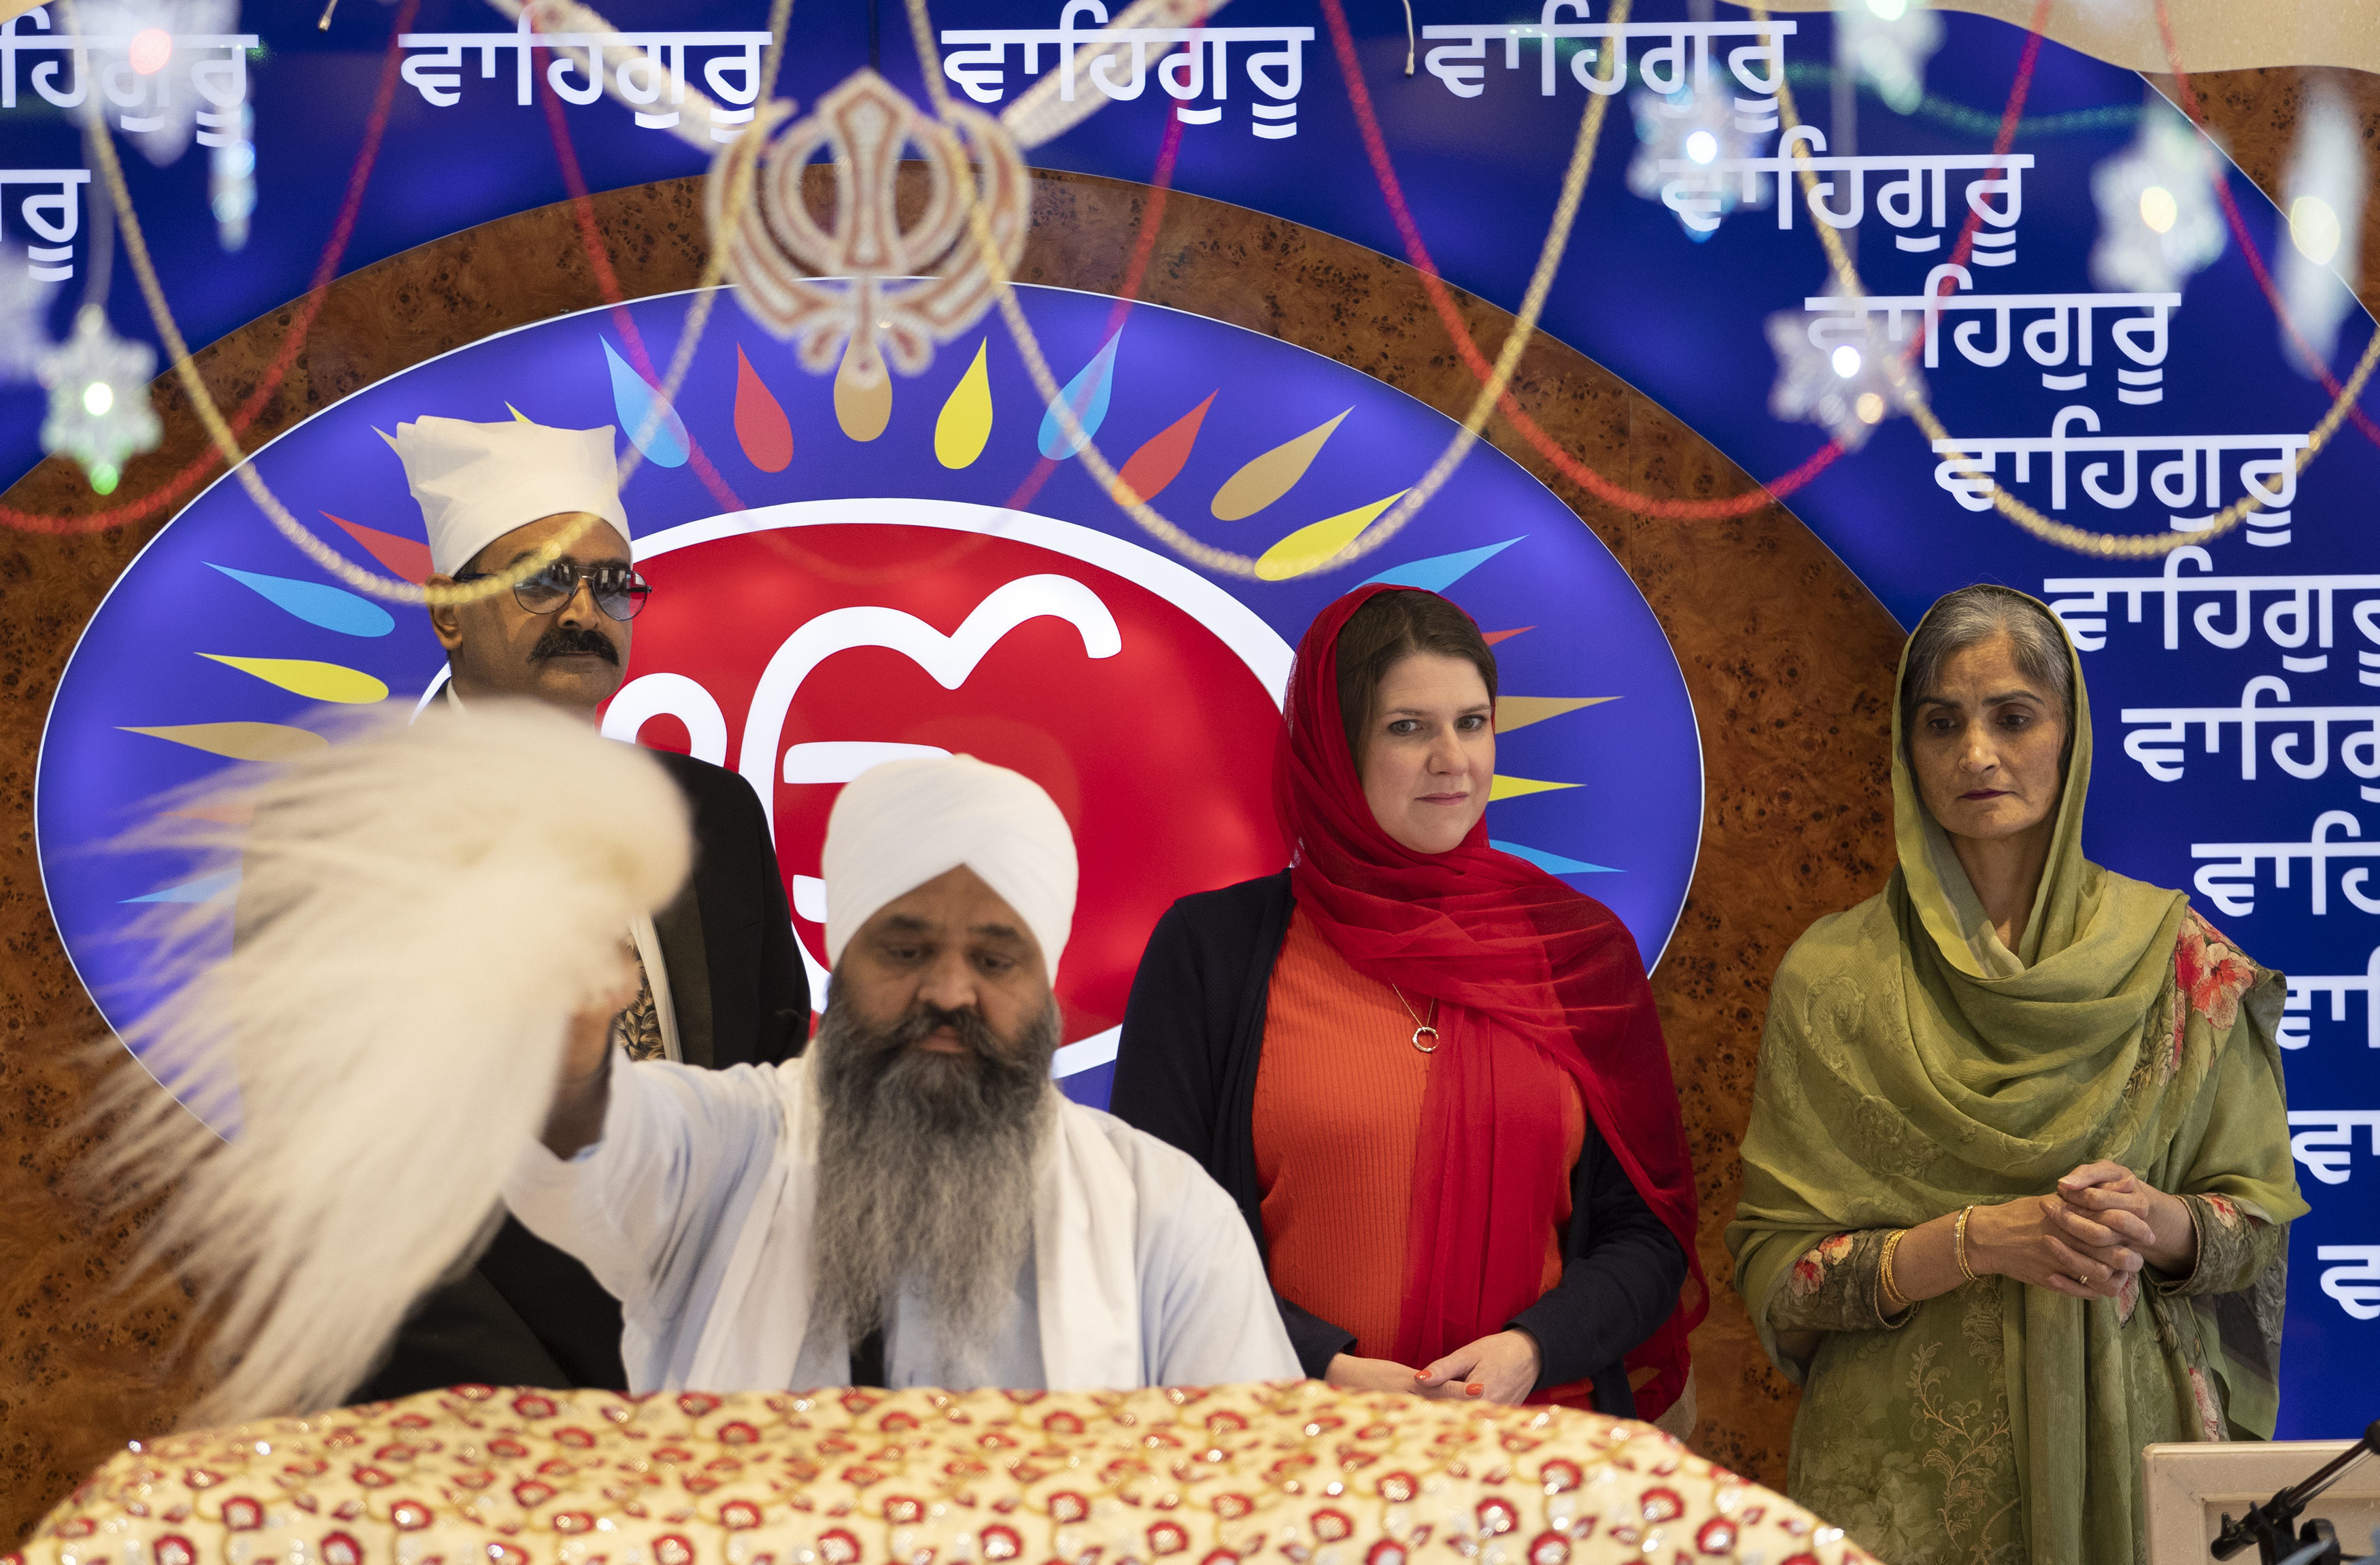 Britain's opposition Liberal Democrats party leader Jo Swinson, 2nd right, during a ceremony as she is welcomed during a visit to the Gurdwara Singh Sabha Temple for an election campaign stop in Glasgow- AP